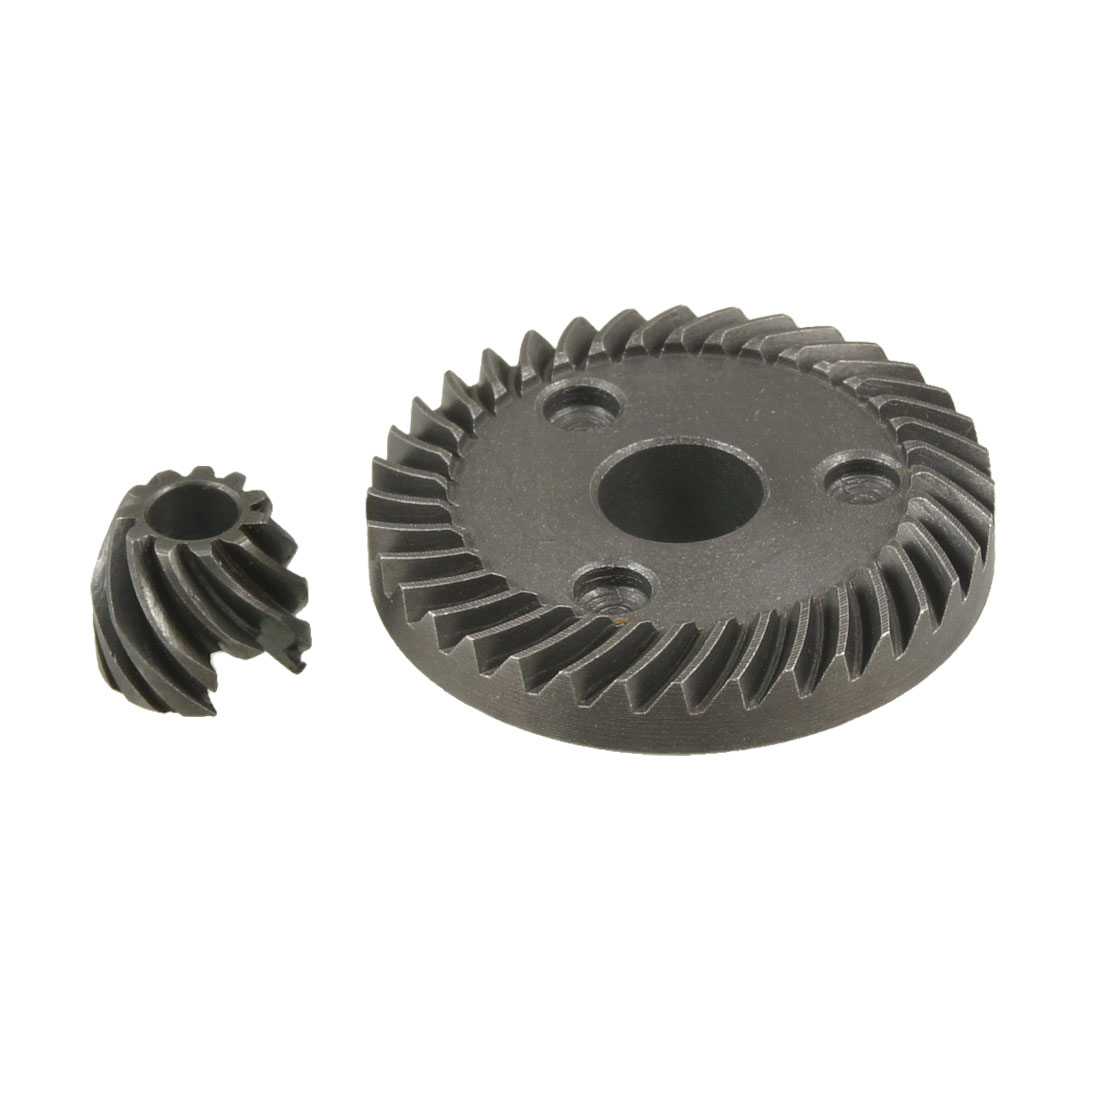 1 Set Replacement Angle Grinder Spiral Bevel Gear Set for Makita 9523